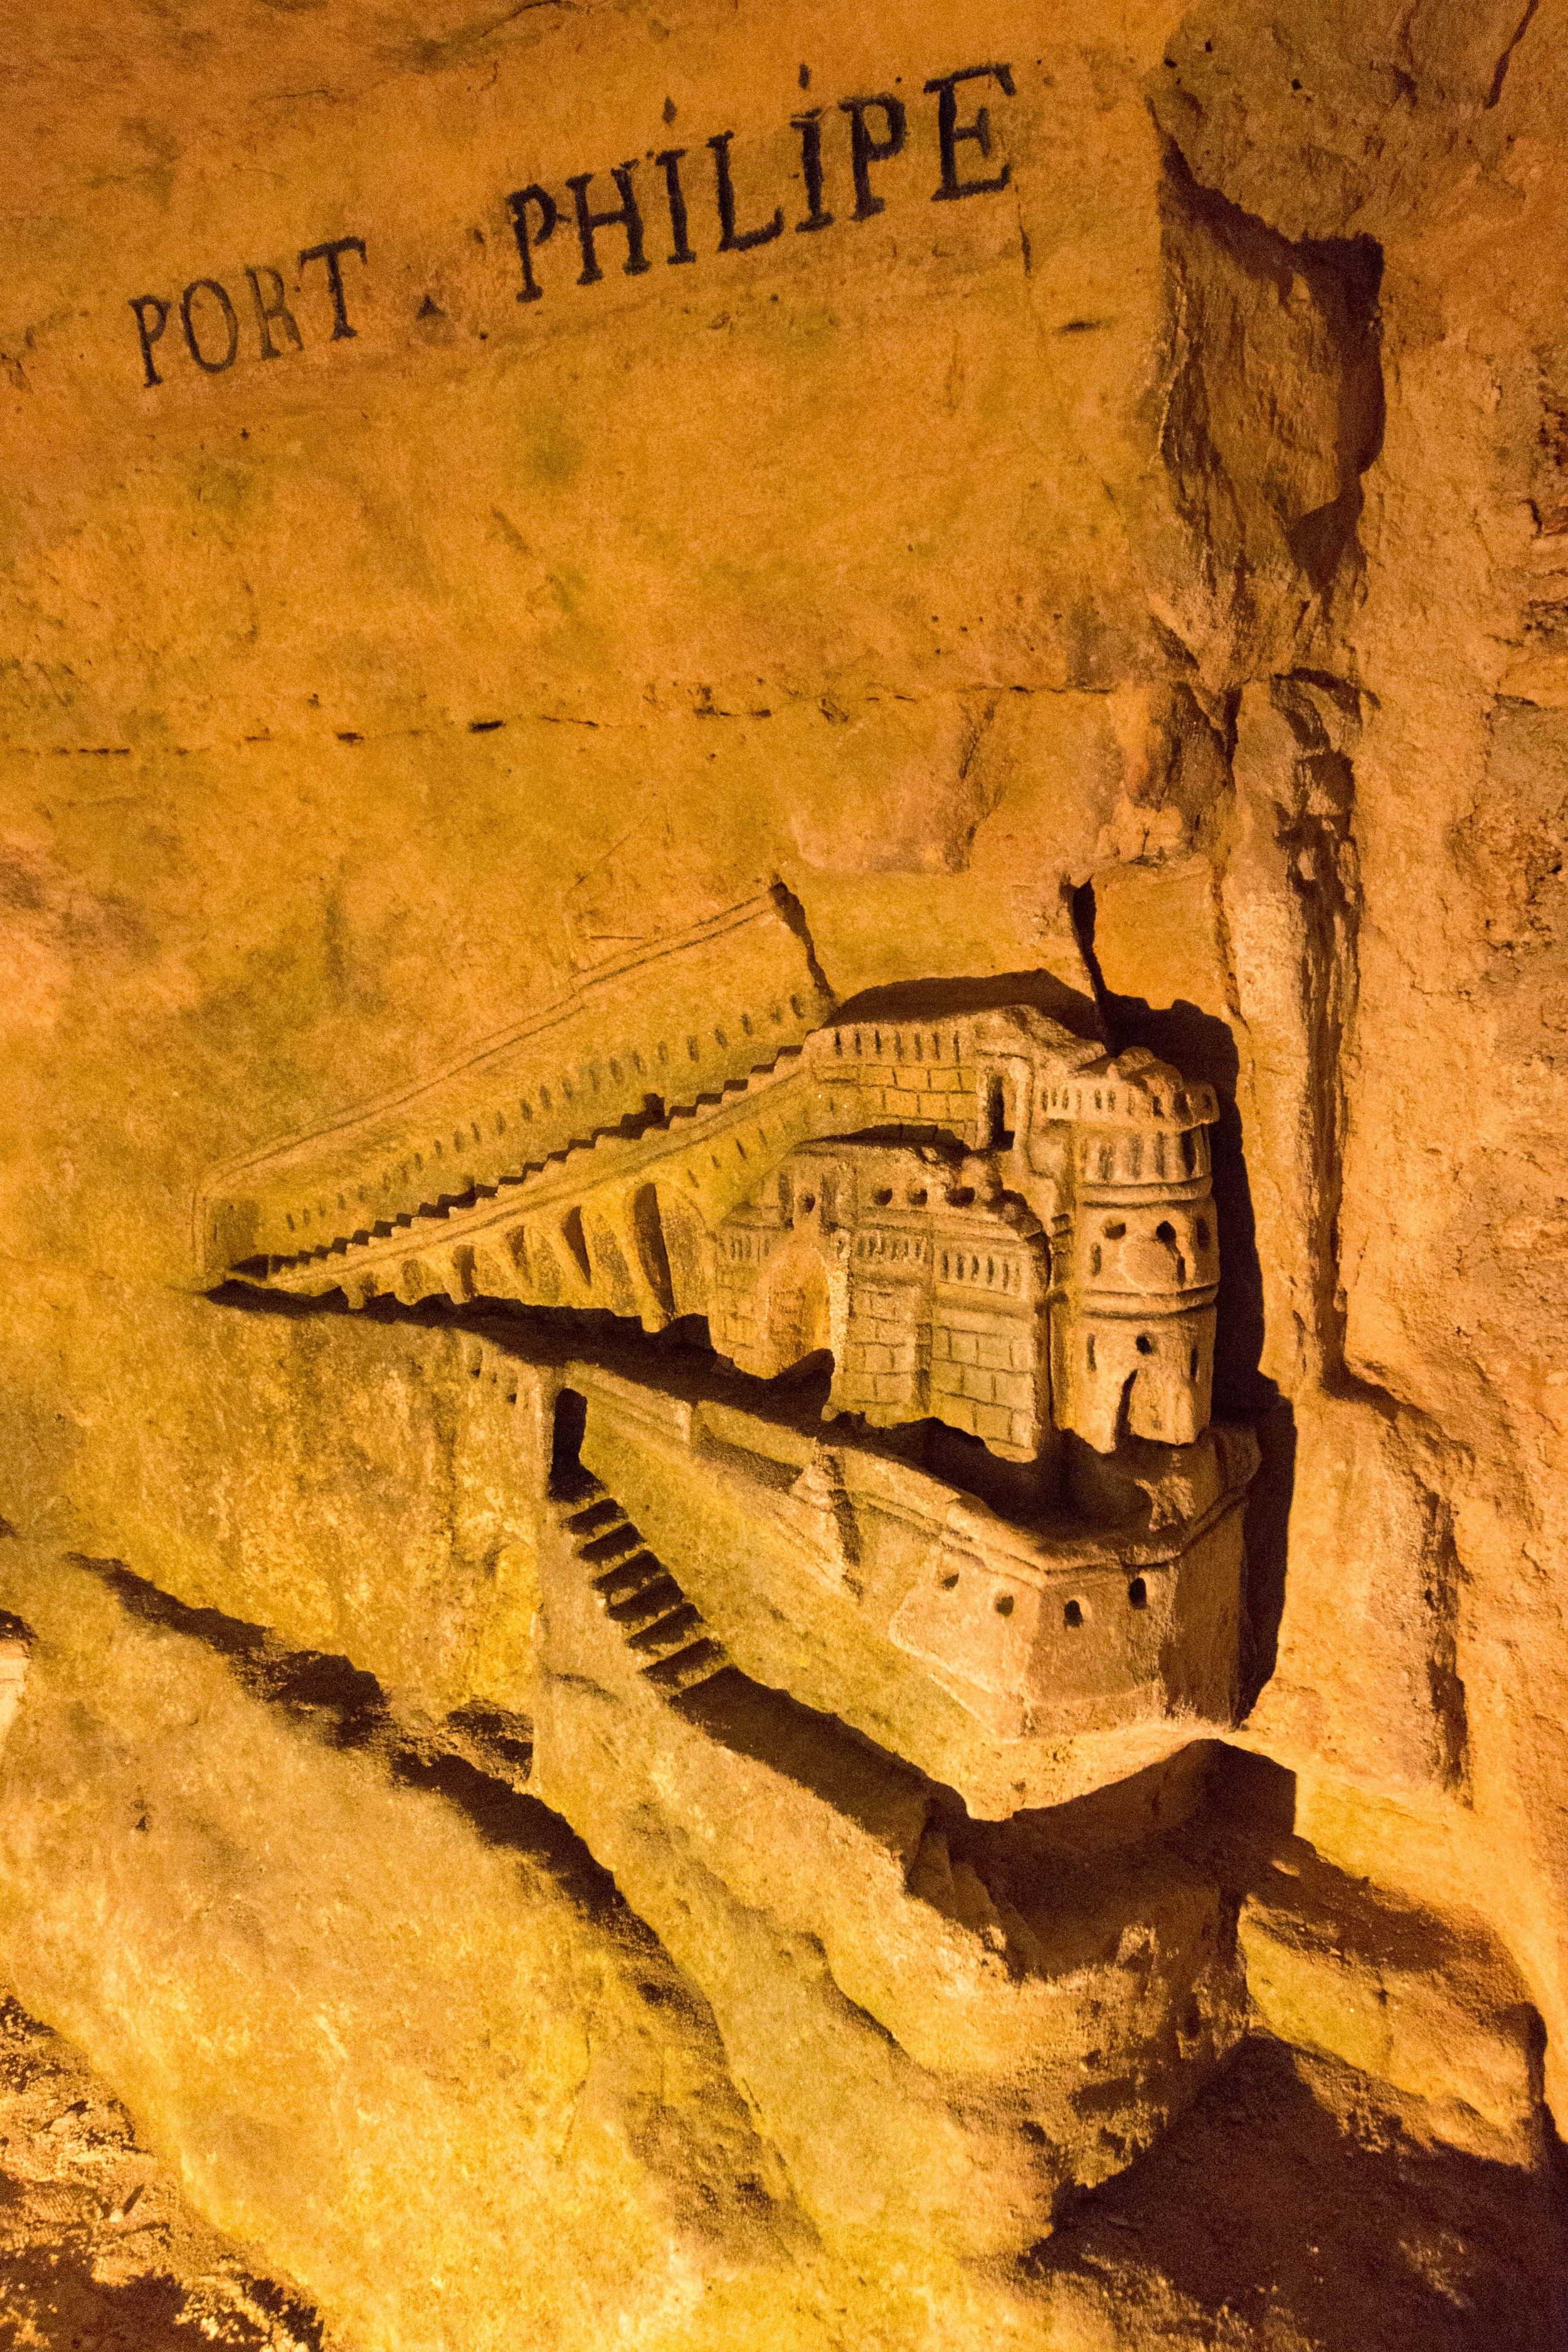 Intricate carving of Port Philipe in the tunnels